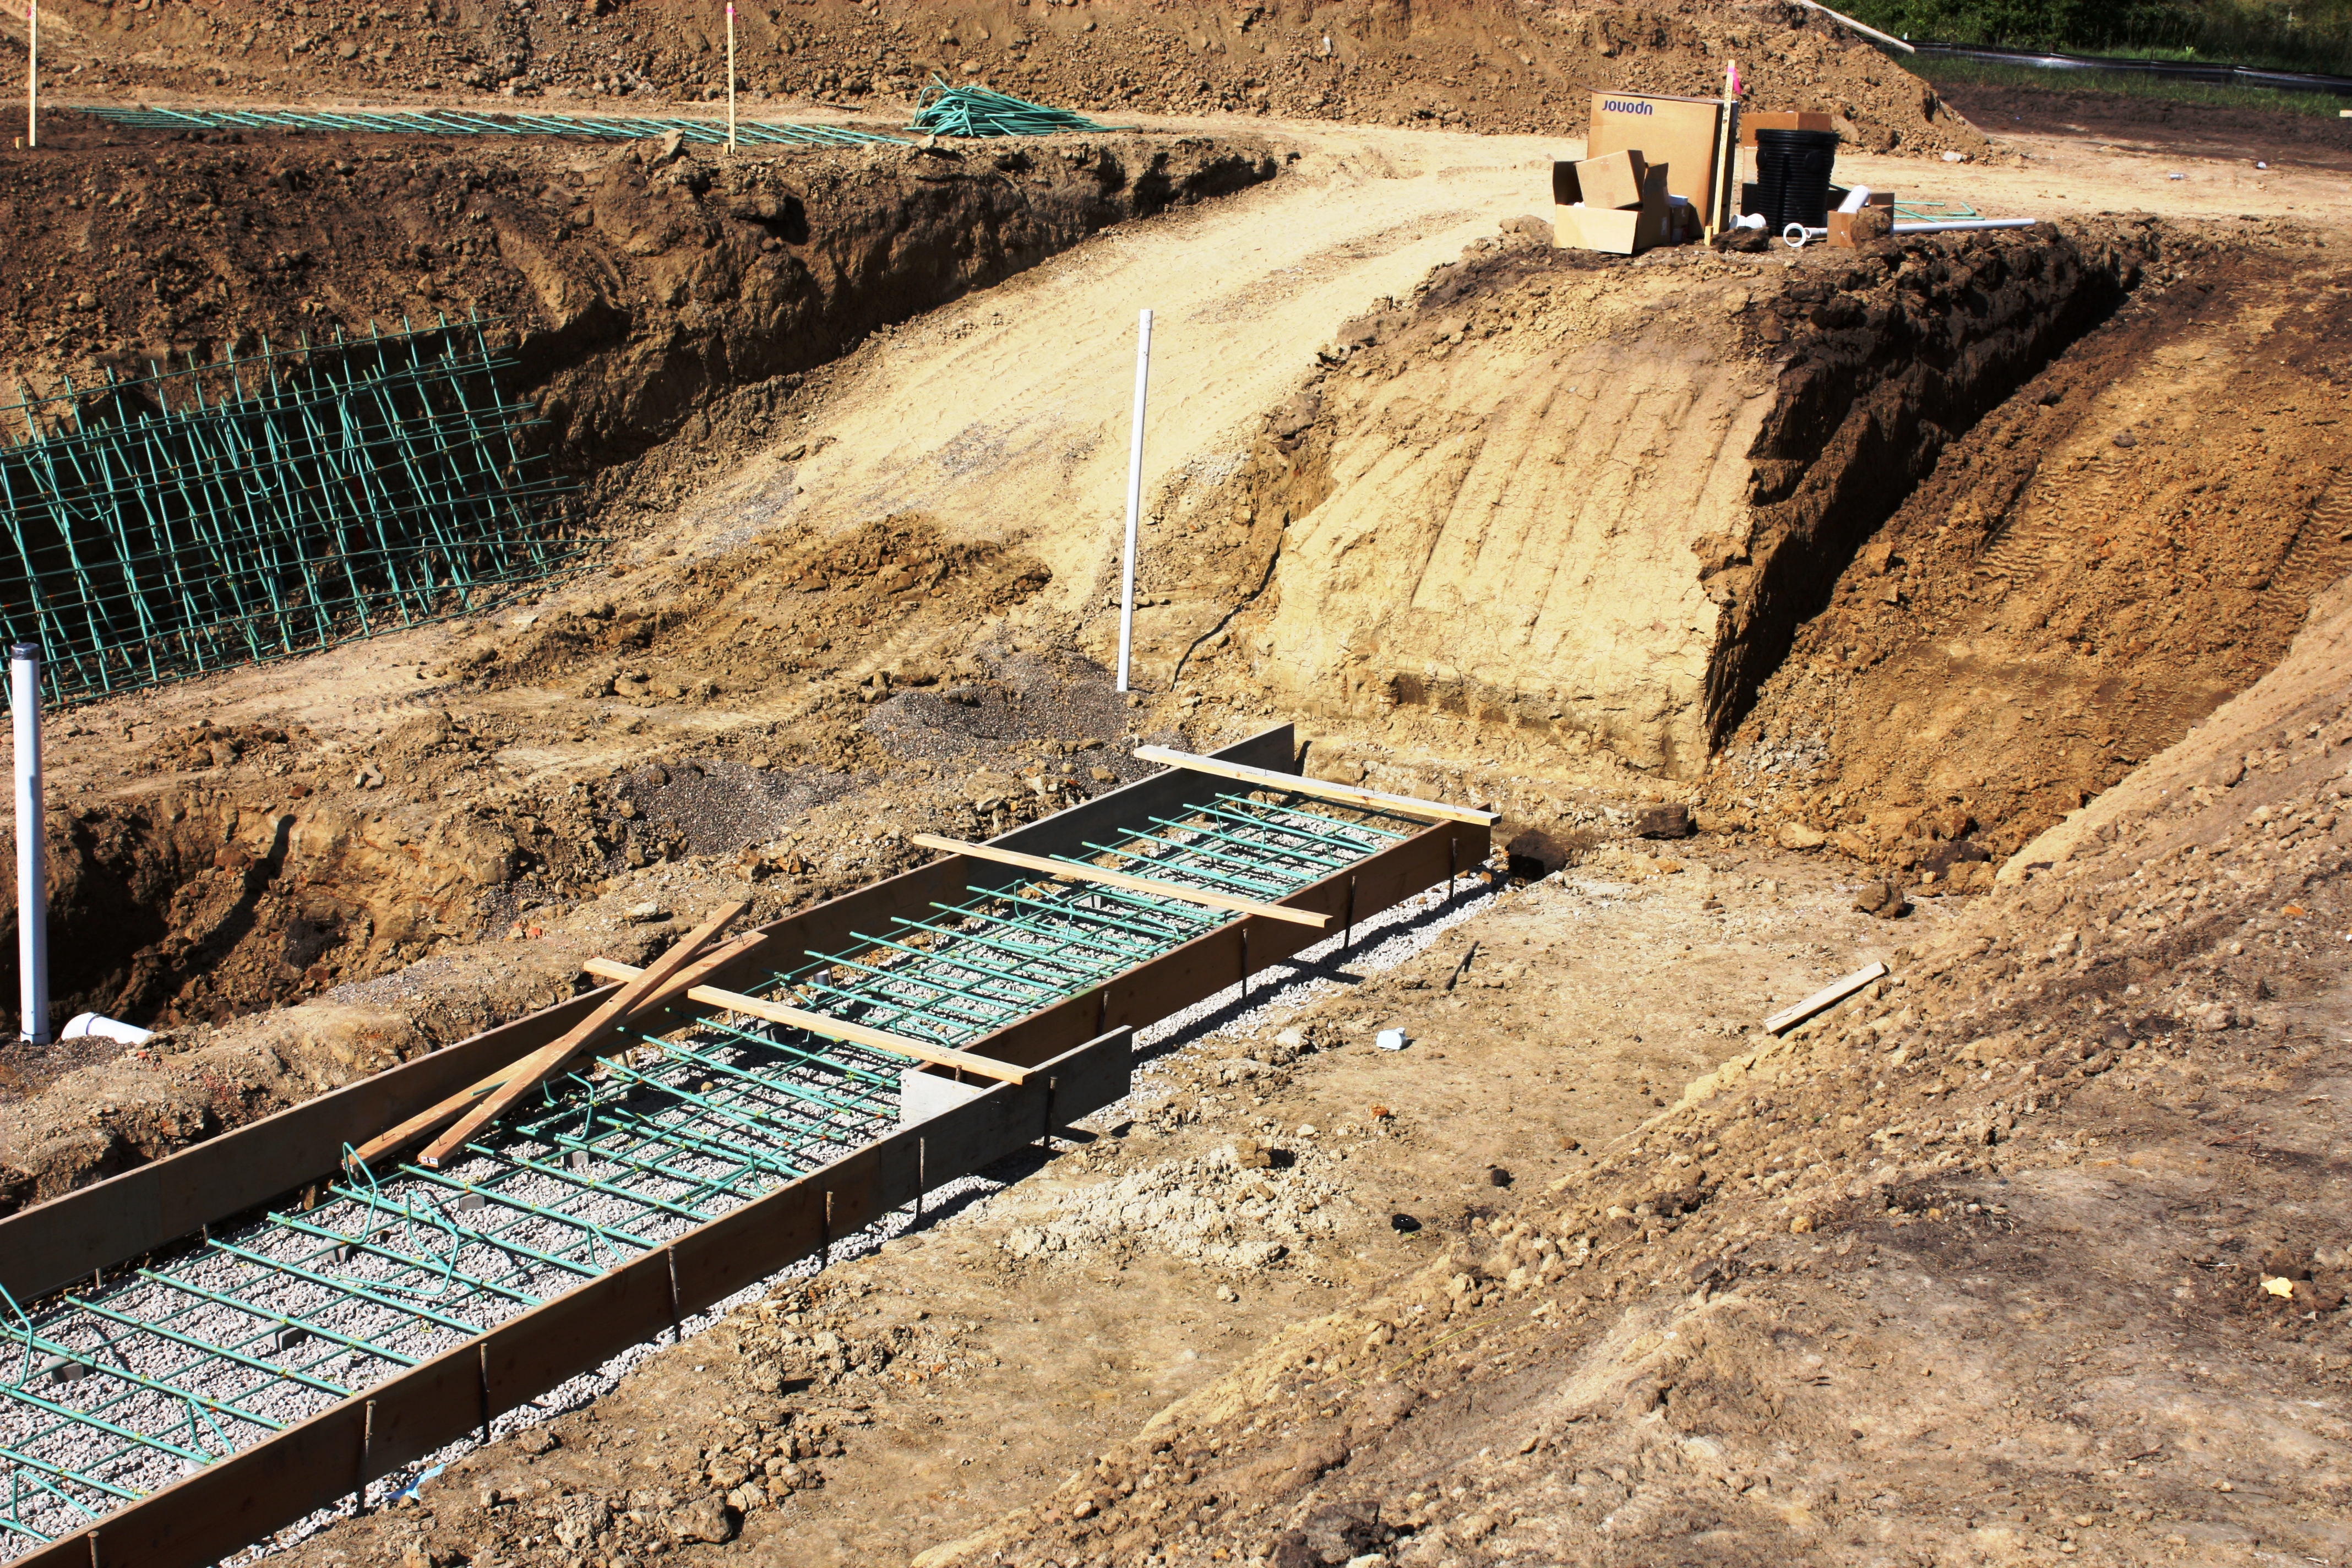 Second Ramp is Cut-in Allowing Access to South Building Excavation